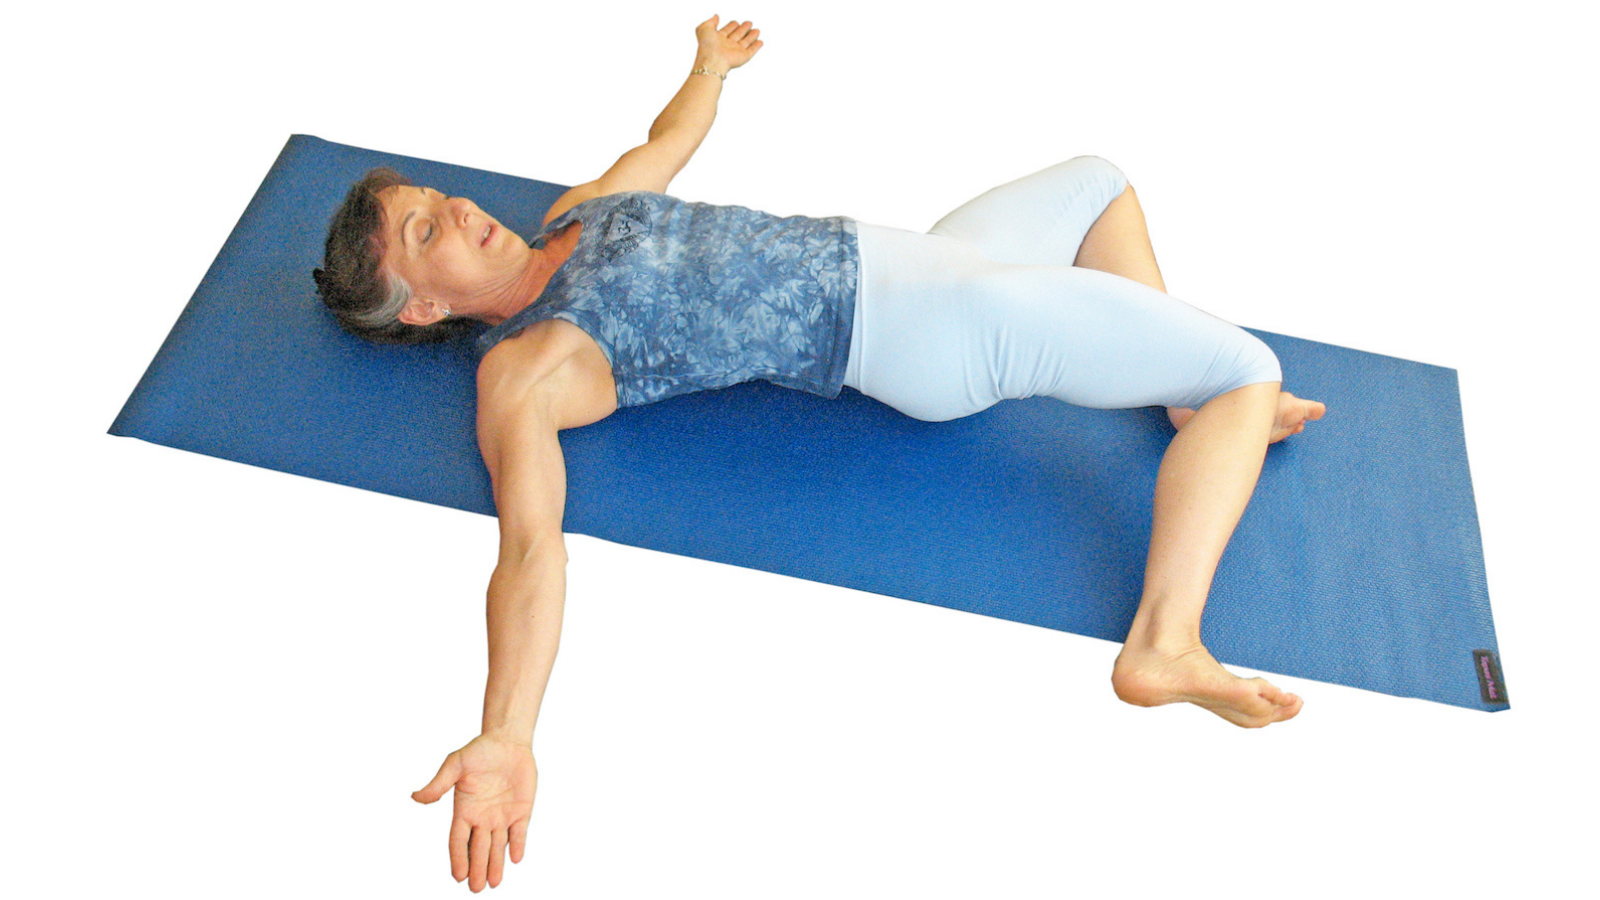 Traction twist in yoga for improved back mobilization